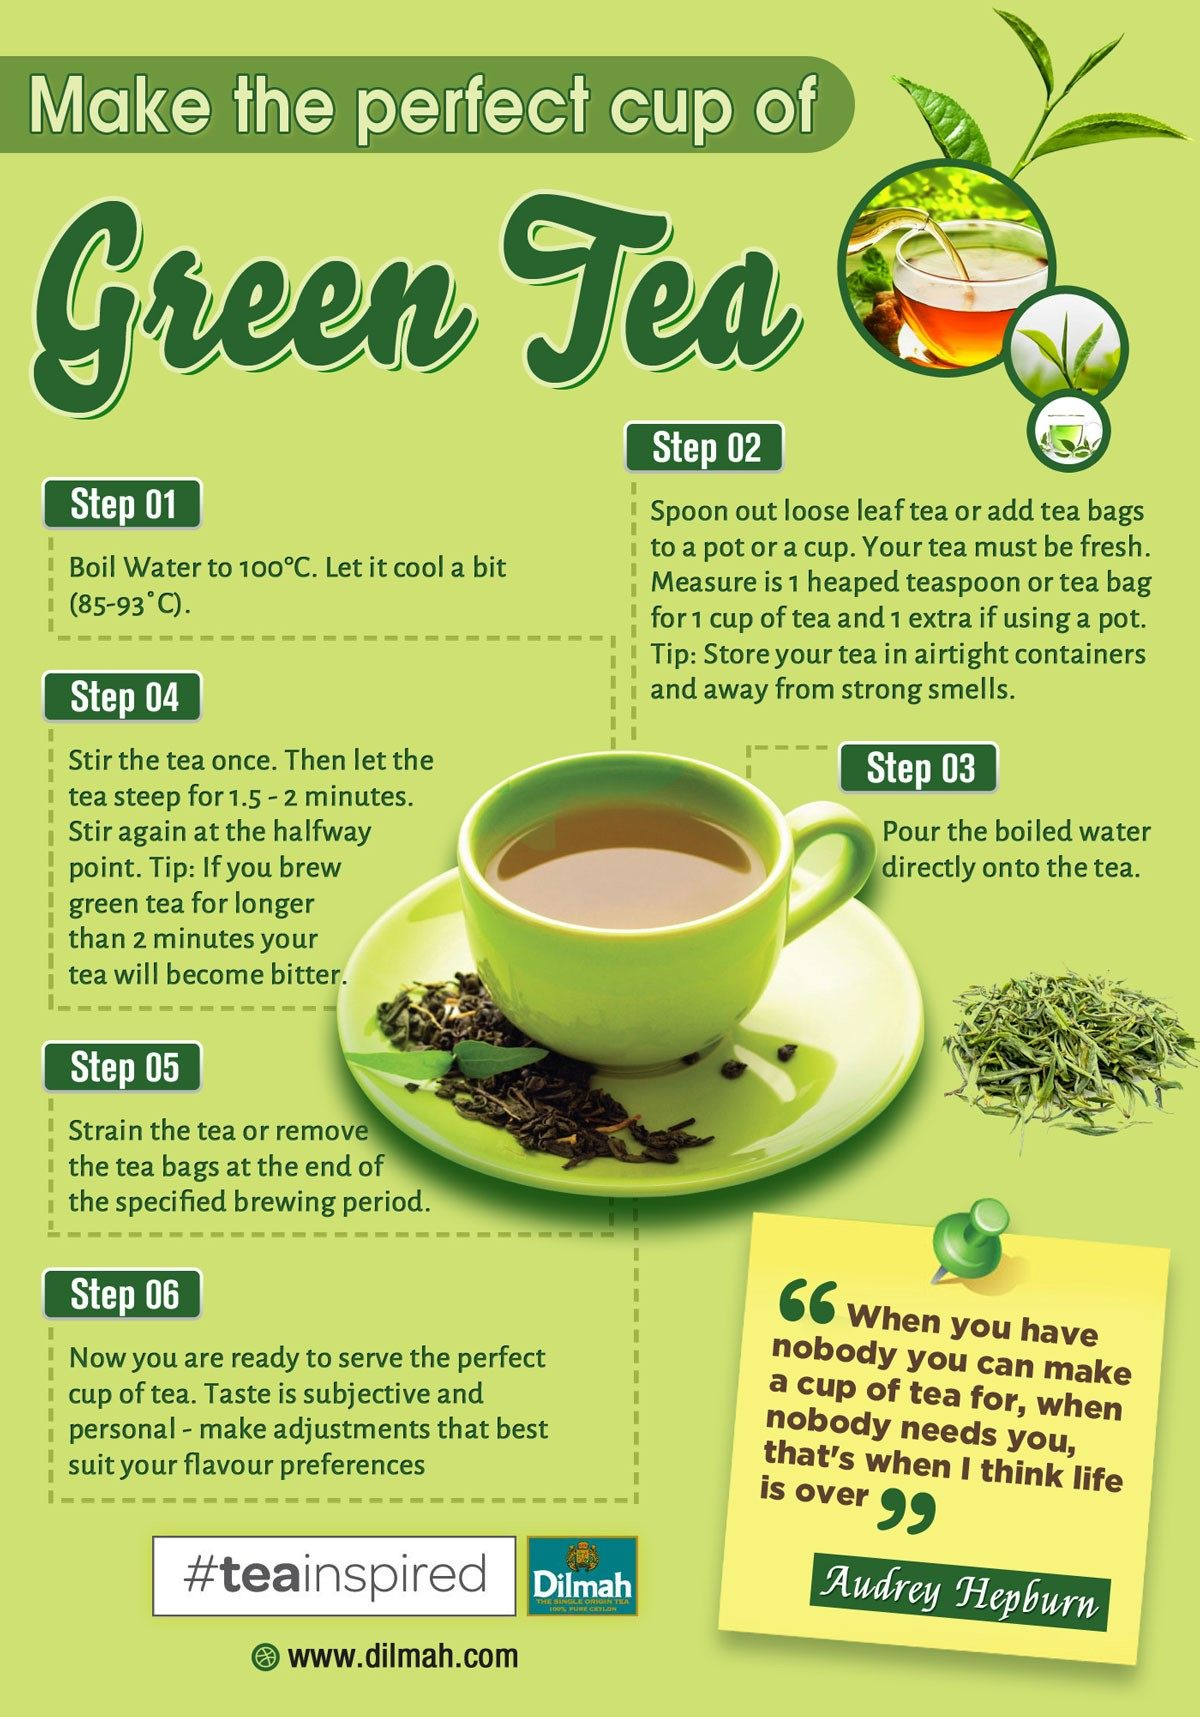 Herbal or green tea is one of the best beverages to help boost physical energy